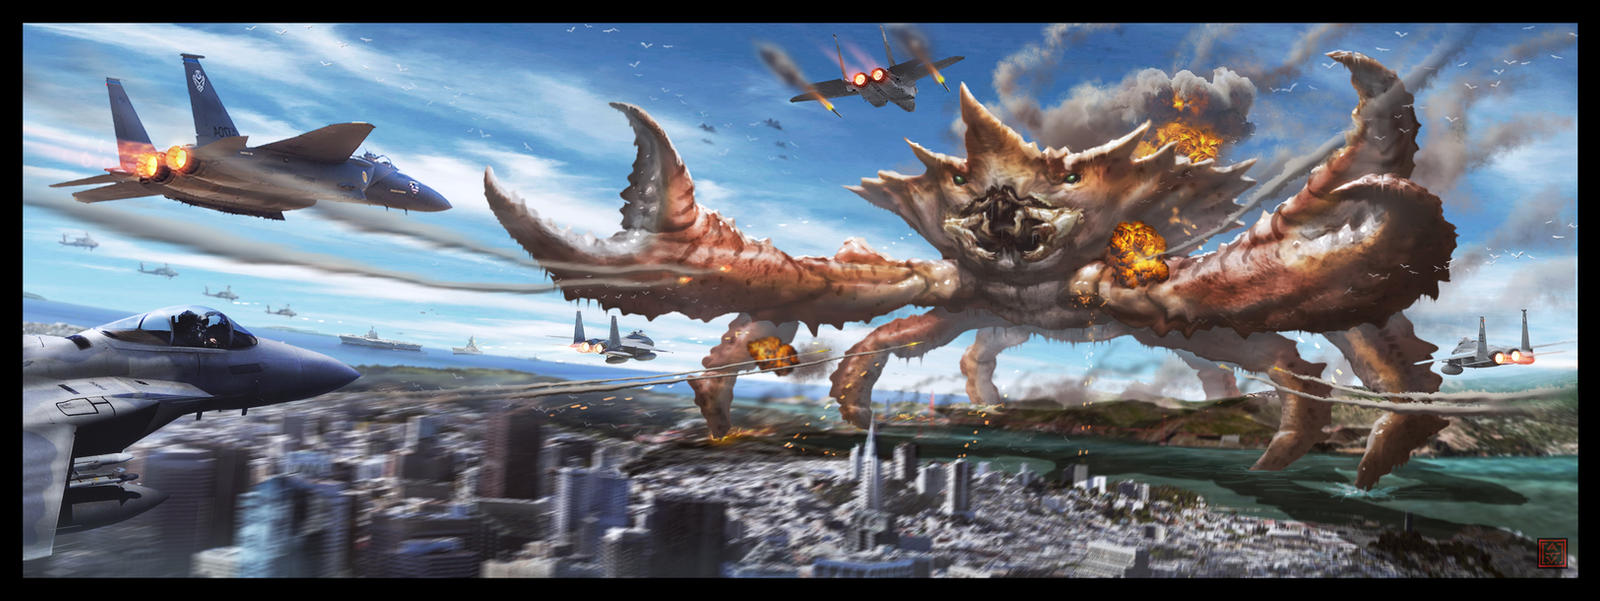 Attack of the Incredible Giant Crab!